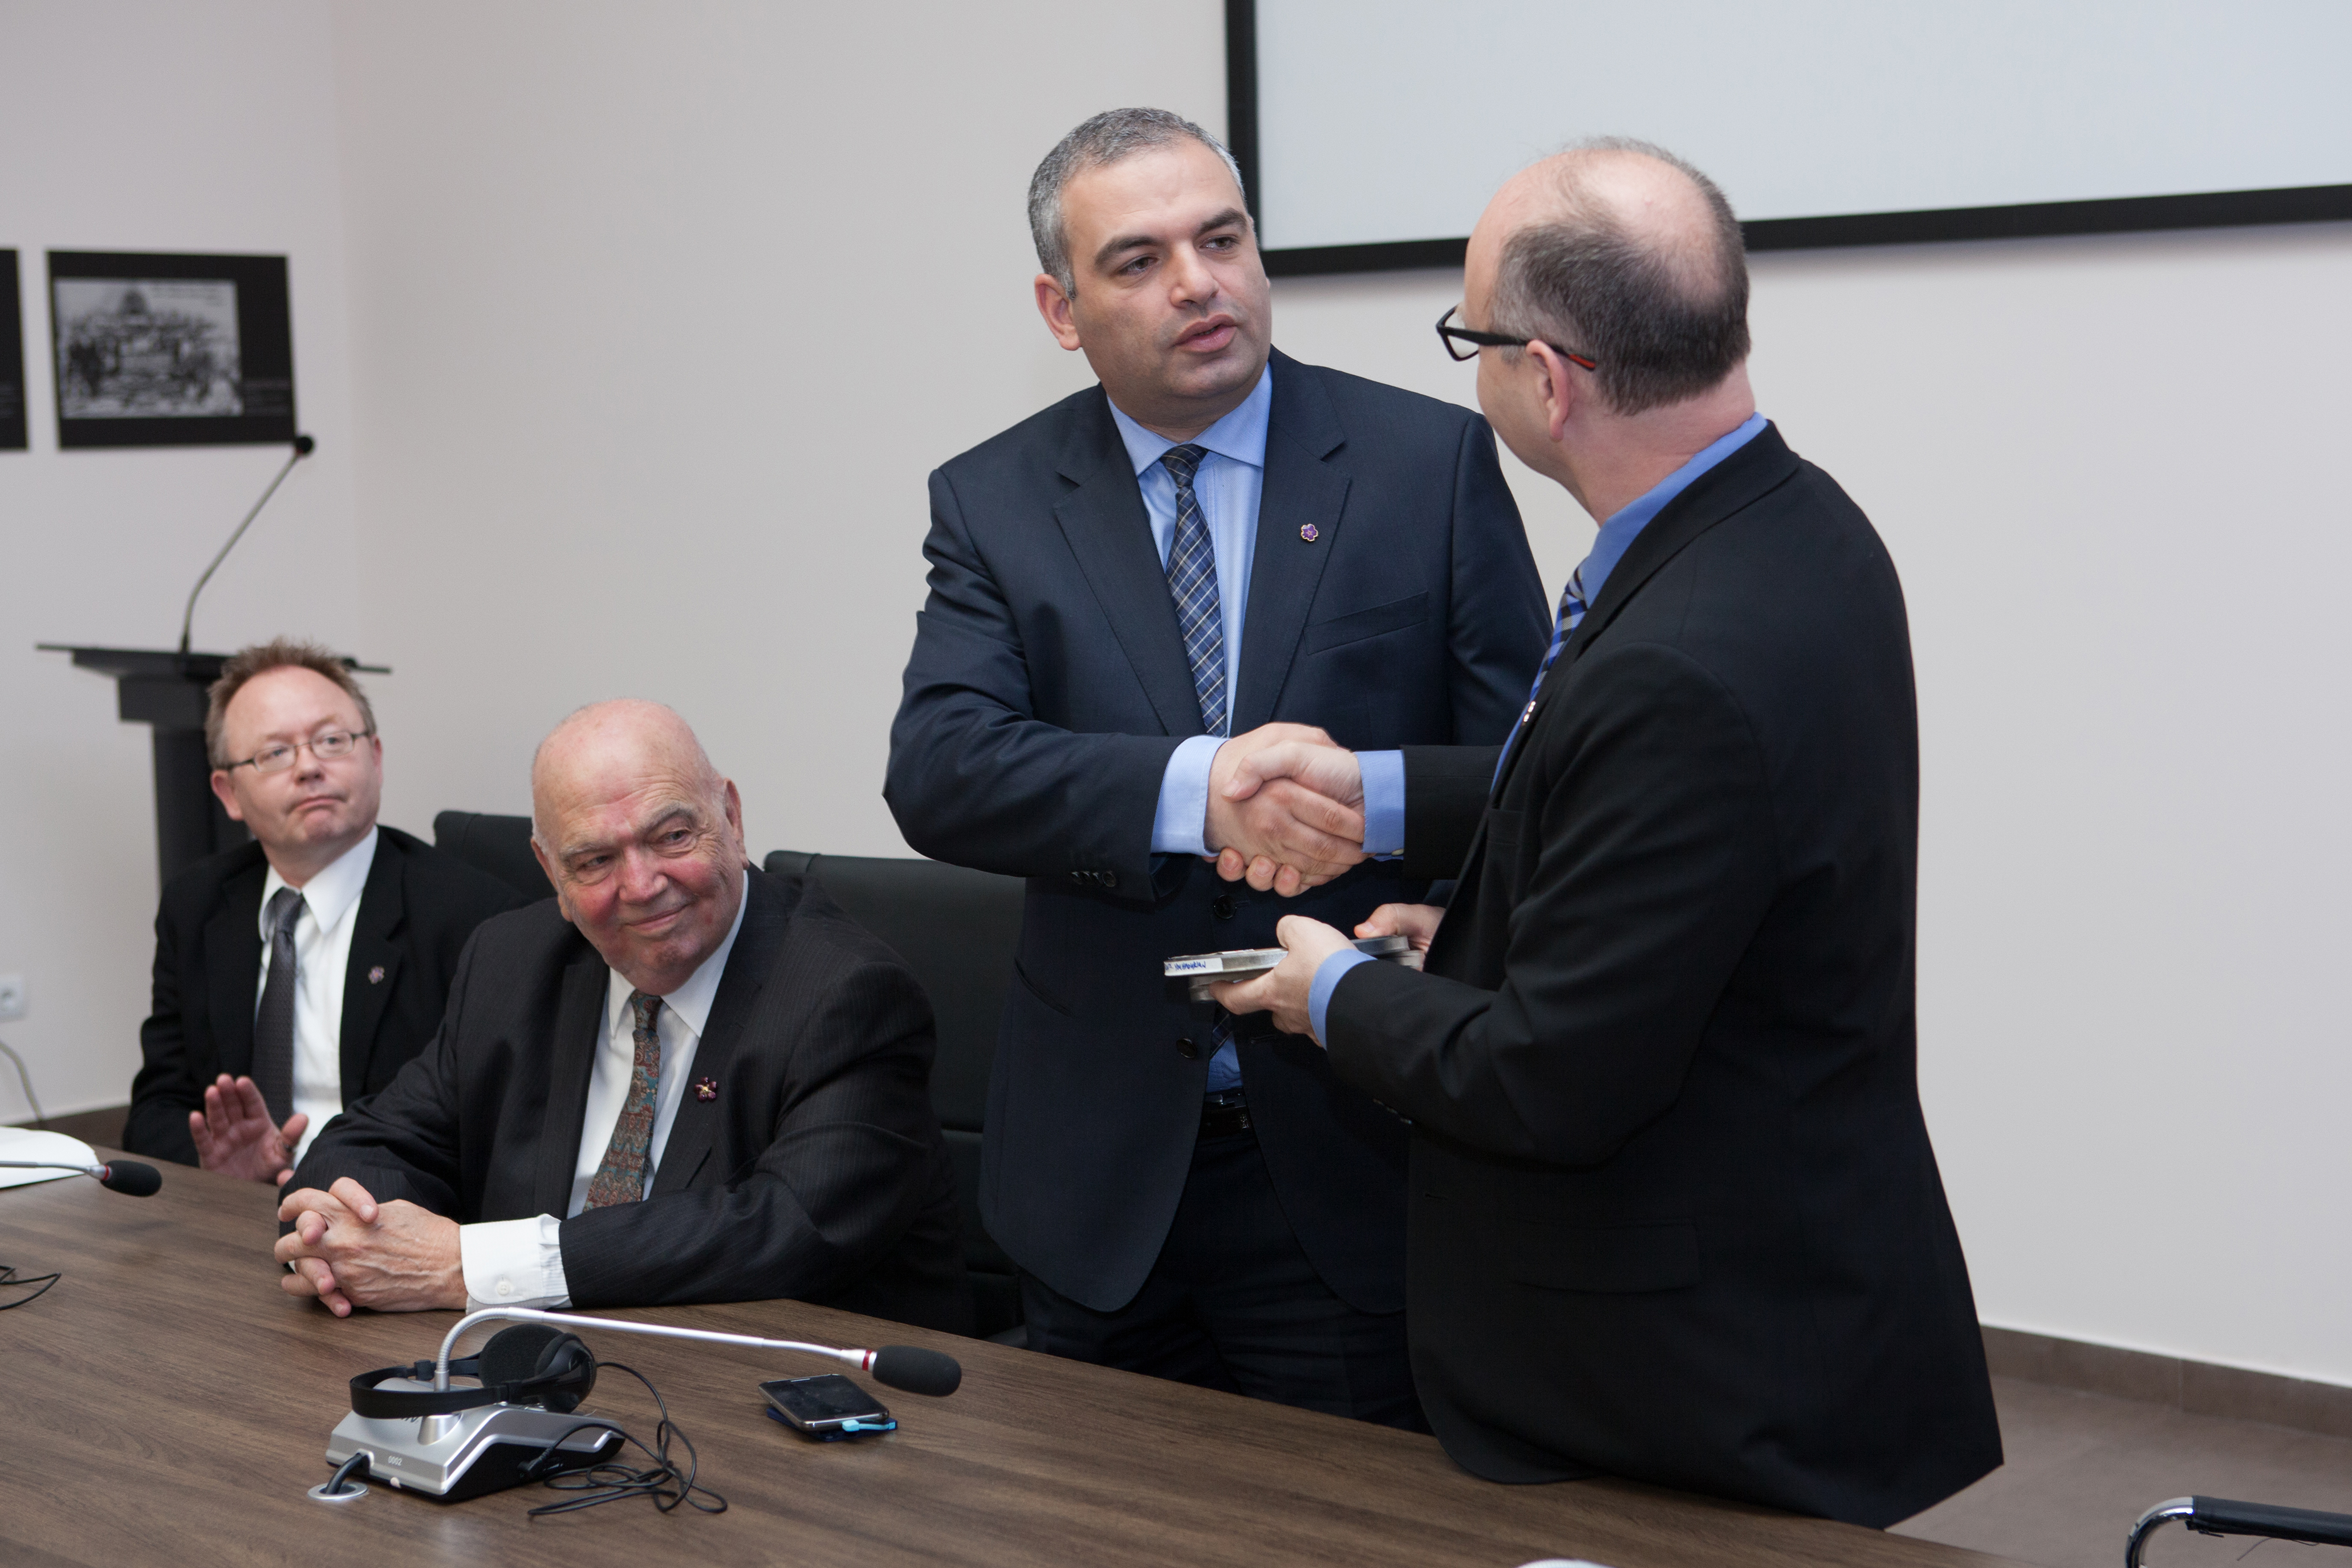 L-R: Wolf Gruner, Richard Hovannisian, Hayk Demoyan and Stephen Smith at delivery of 60 testimonies